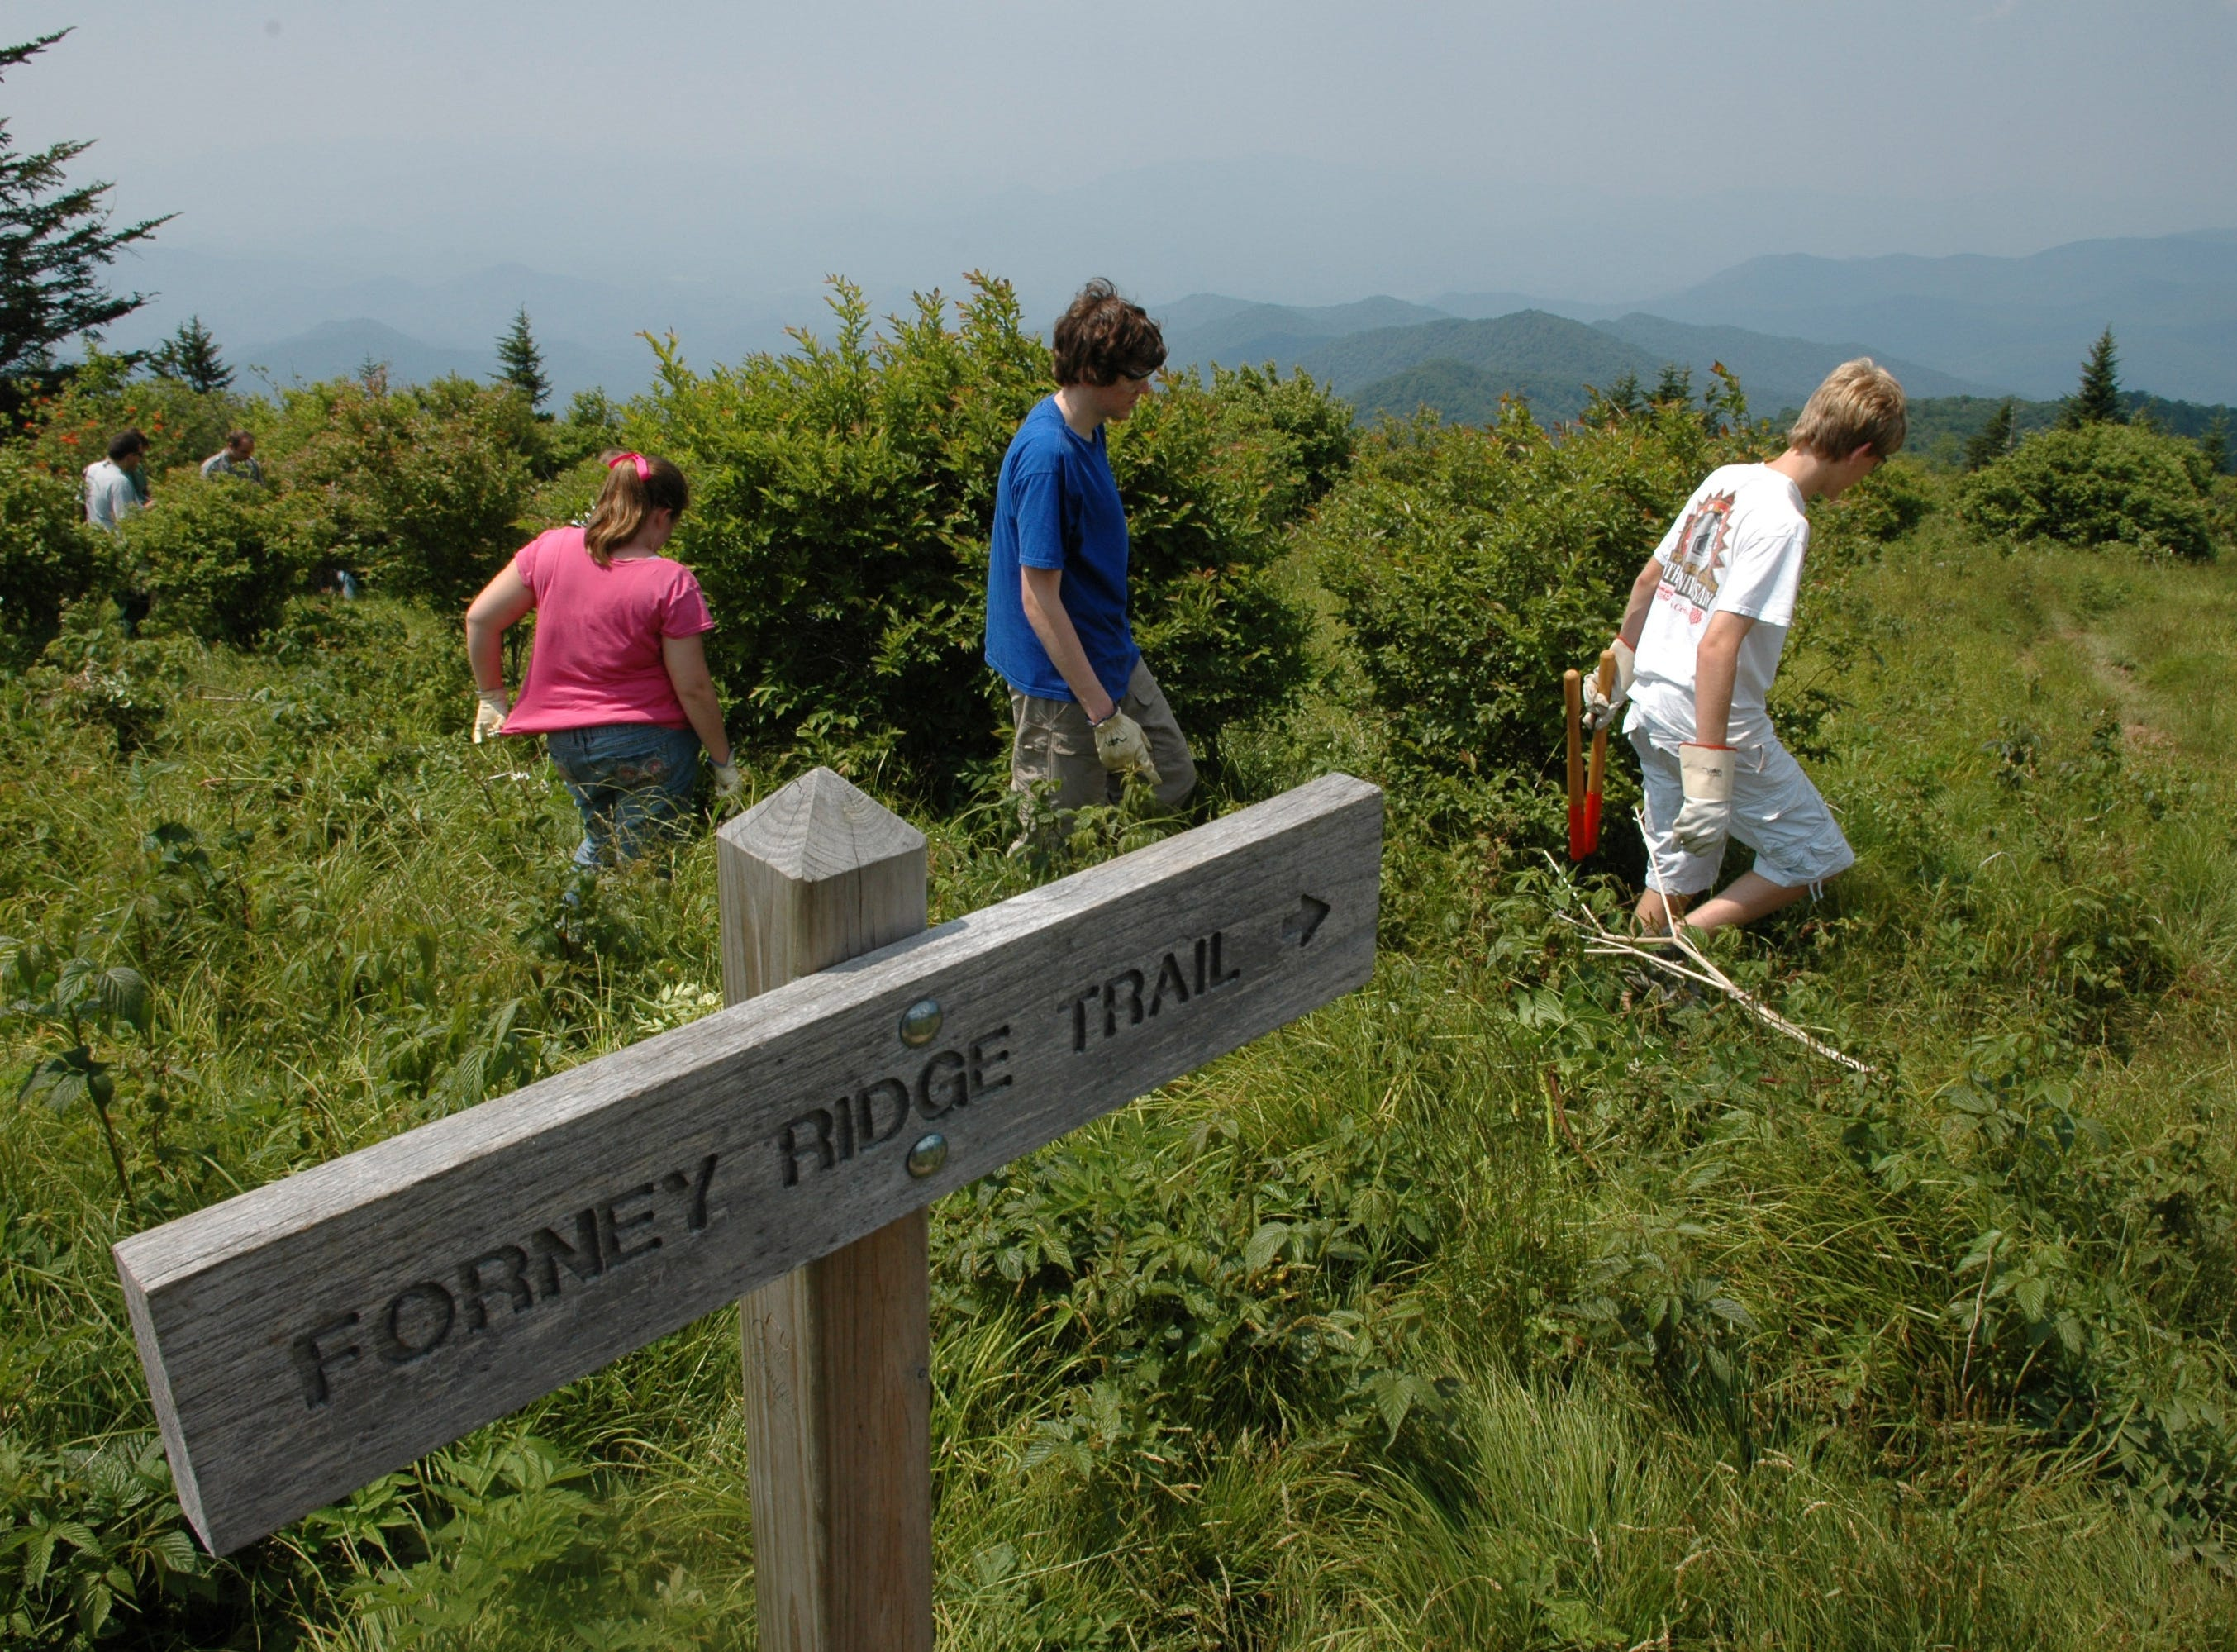 Great Smoky Mountains Institute at Tremont students, from left, Rebecca McCoy, 12, Eric Weigel, 15, and Taylor Rinehart, 16, work on removing plants from on top of Andrews Bald near Clingmans Dome in the Great Smoky Mountains National Park Thursday afternoon. Jeff Adkins/NEWS SENTINEL ----06/22/2006.